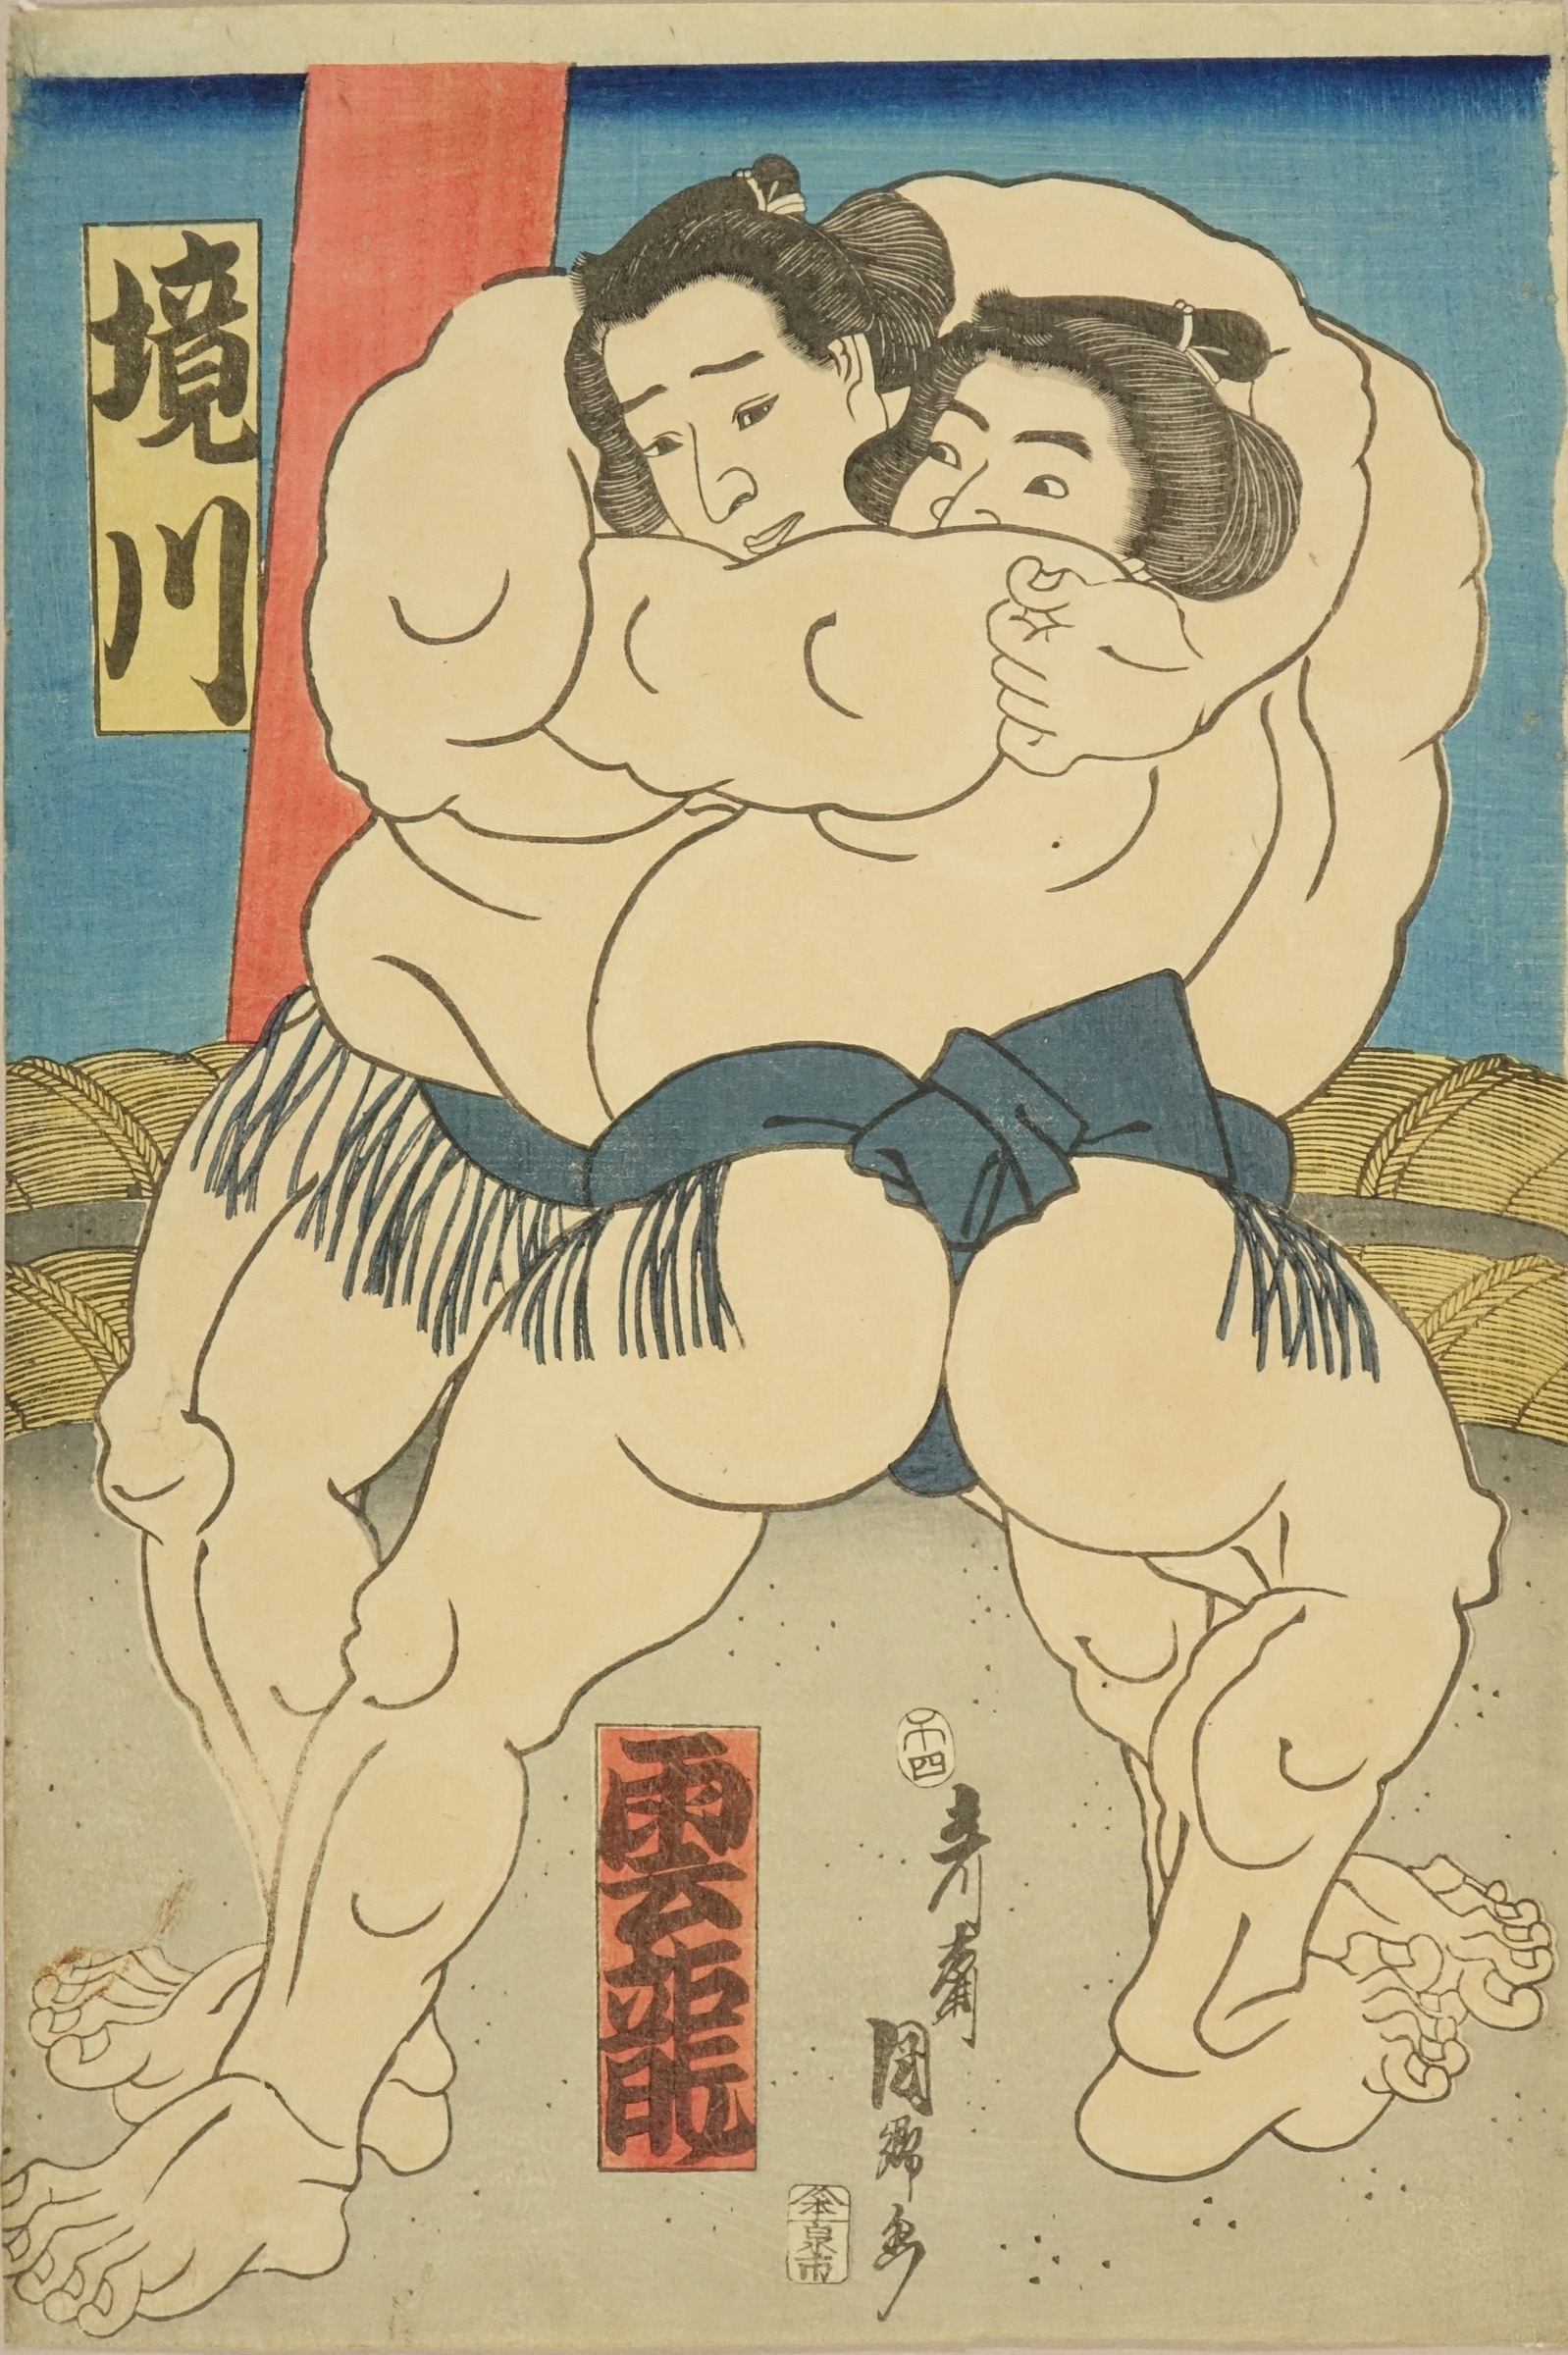 KUNISATO Sumo bout between Sakaigawa and Unryu